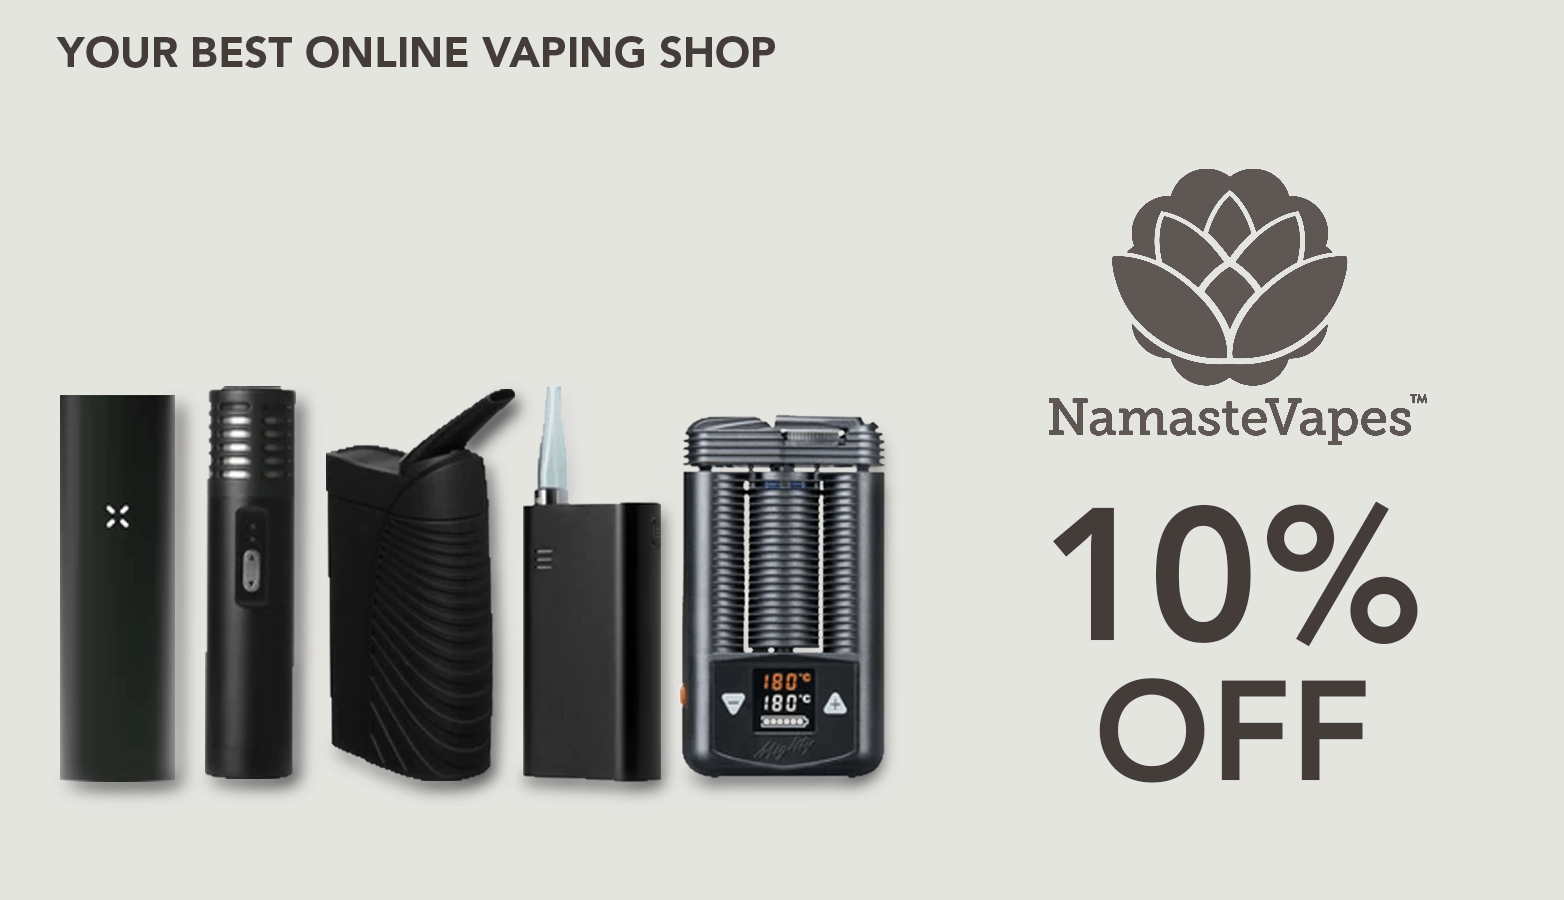 Namaste Vapes CBD Coupon Code discounts promos save on cannabis online Website